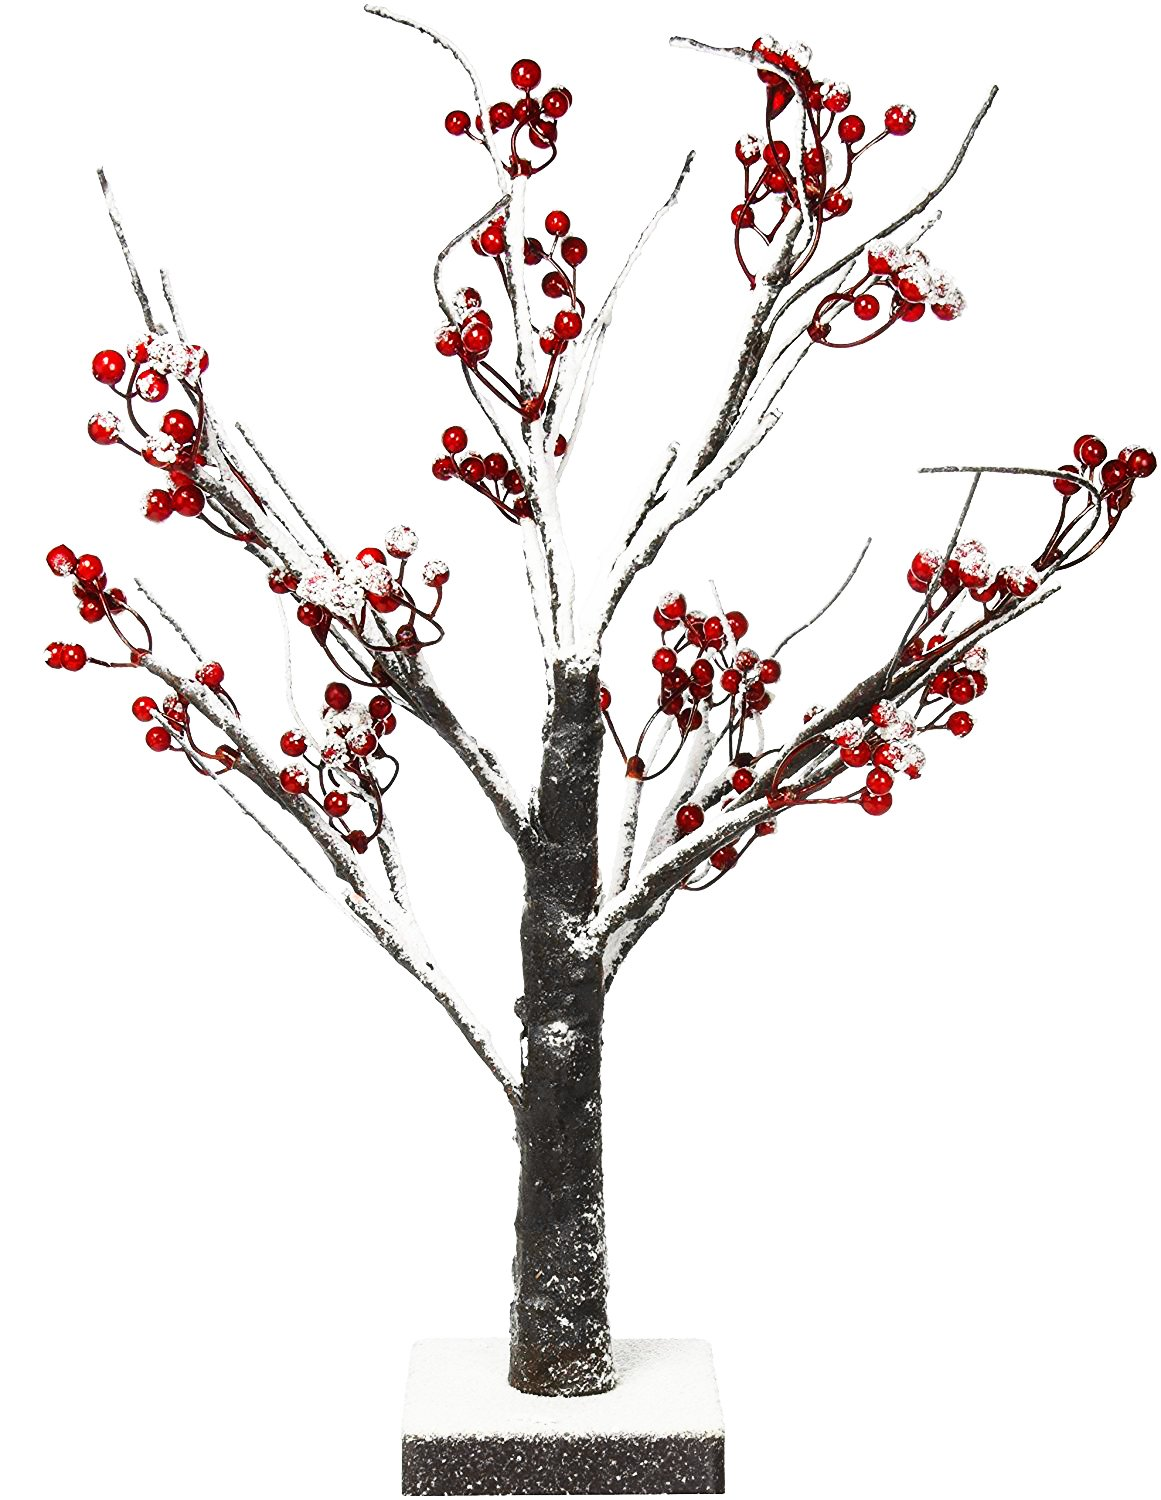 Lightshare Lighted Snow Tree Bonsai with Red Berry E Home International Inc. JGXSTSD24